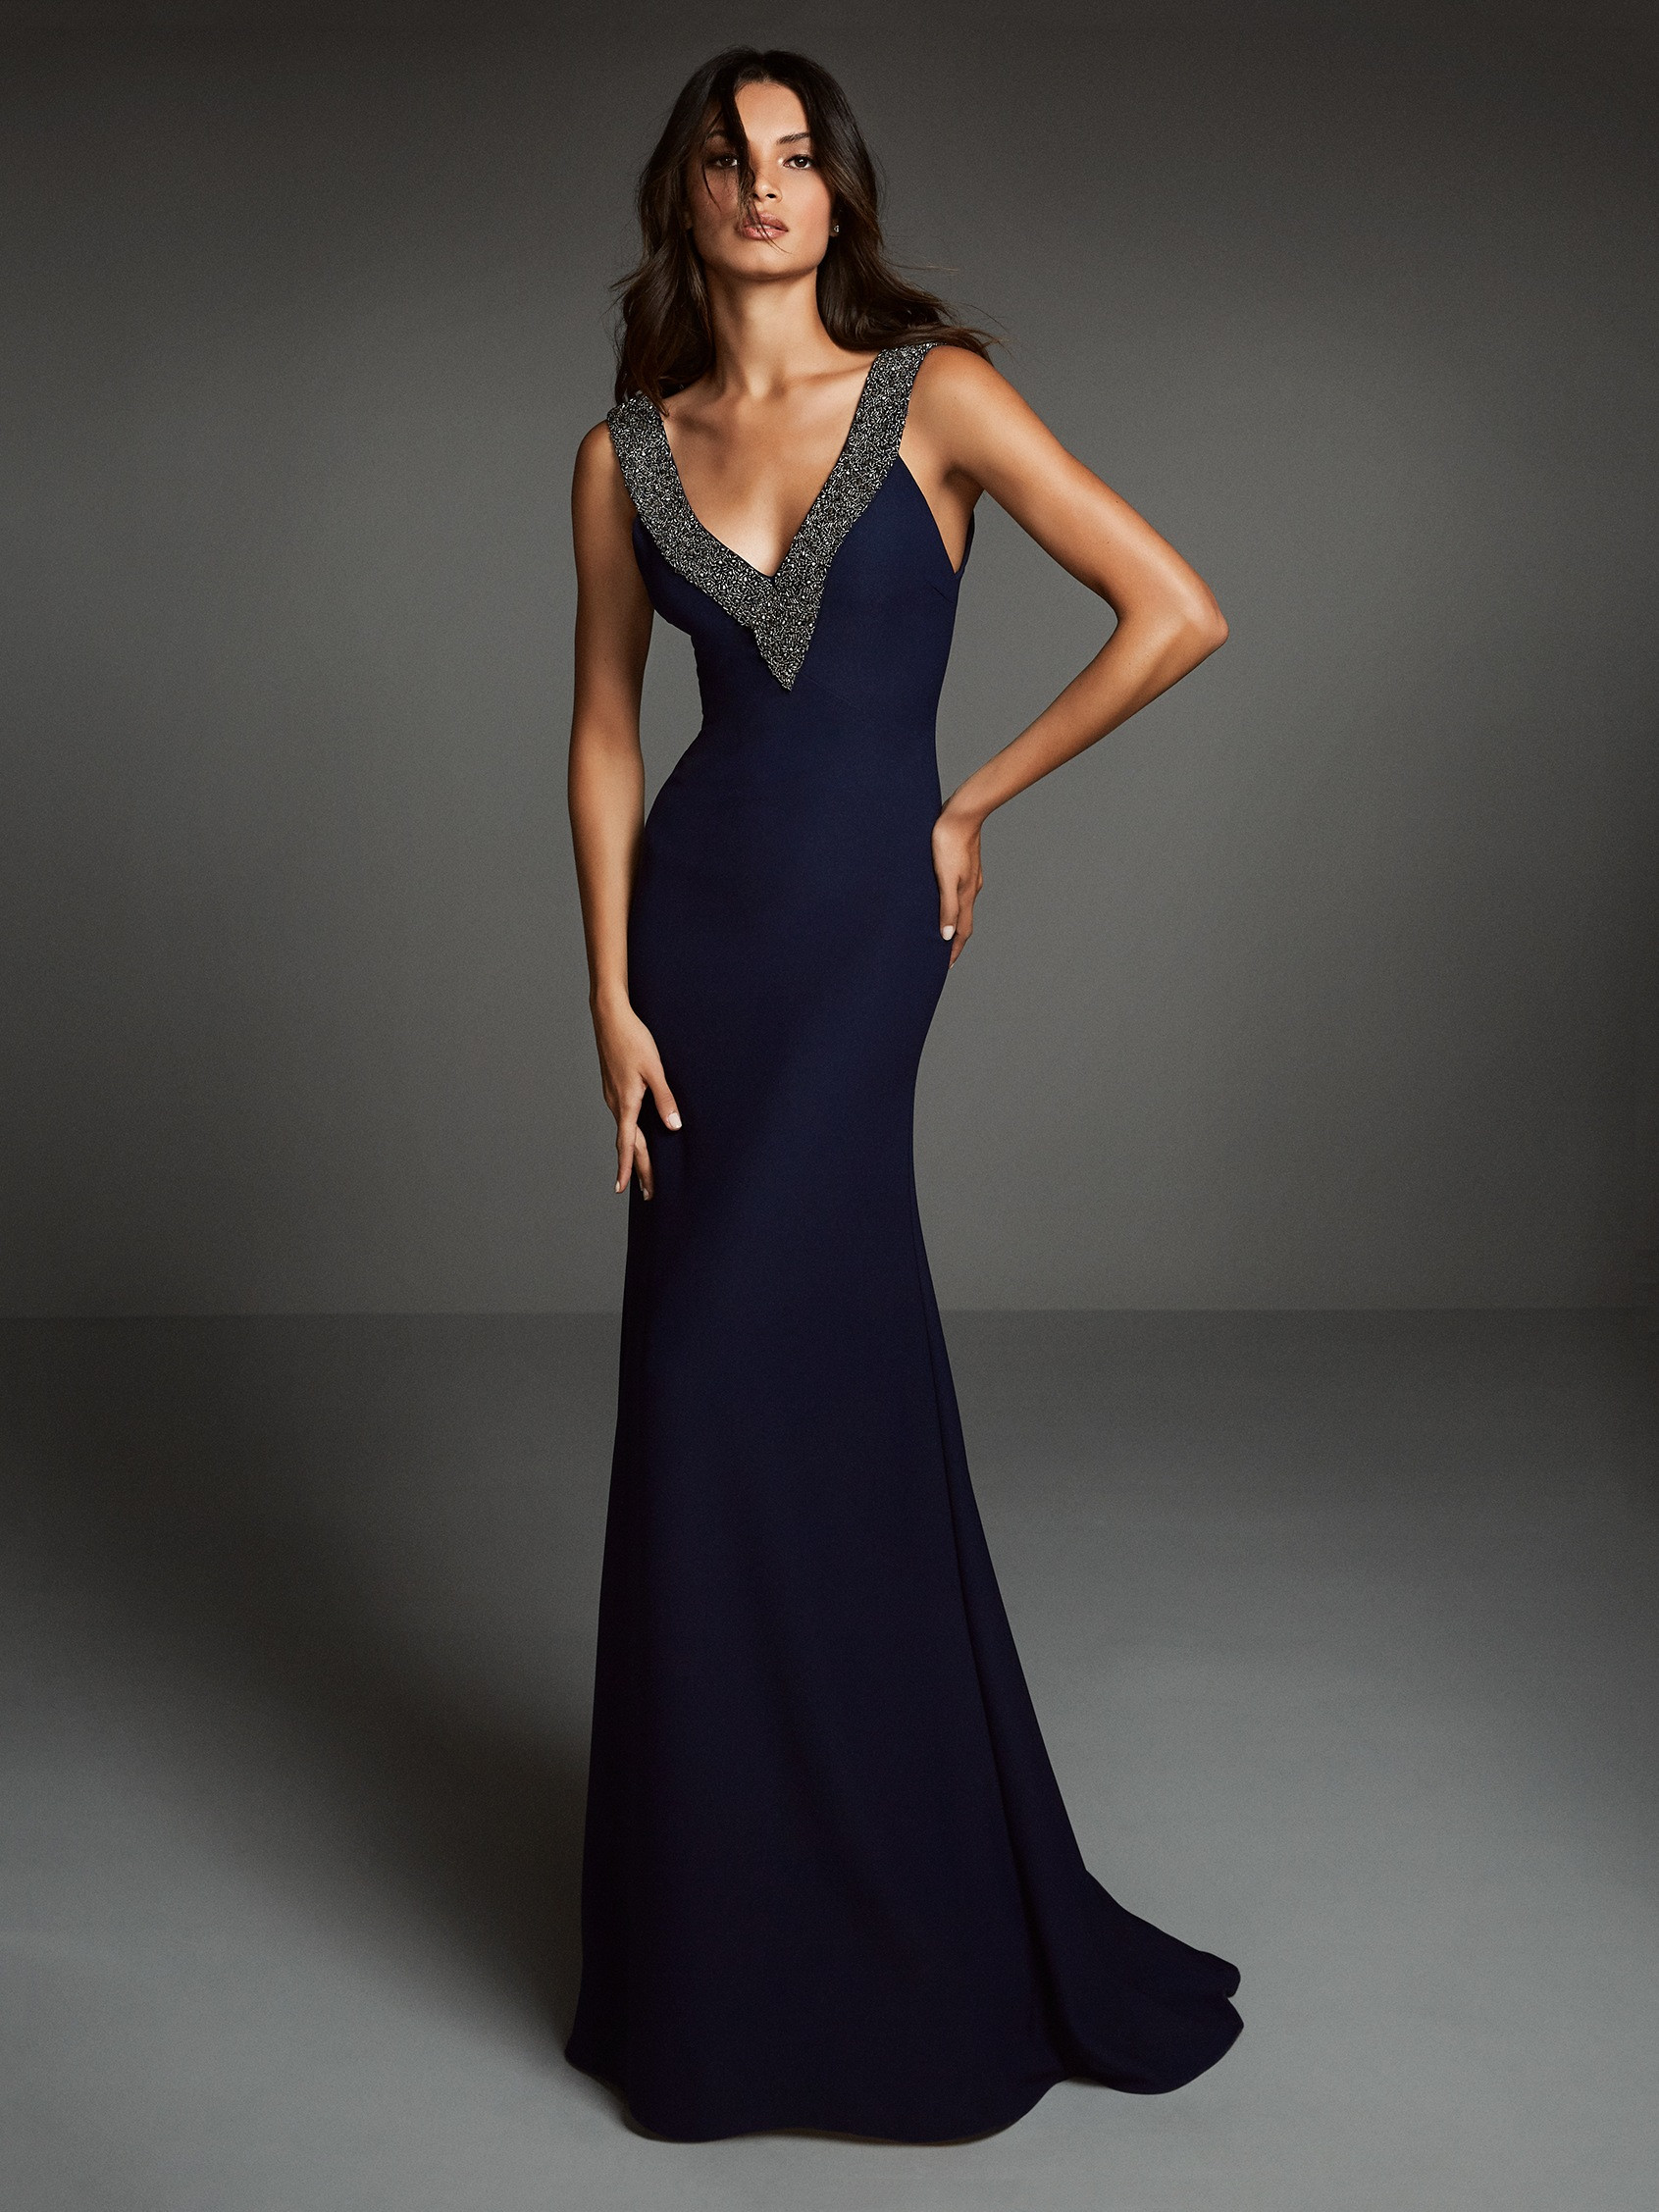 Mira Couture Pronovias ATOS Style 8 Evening Formal Wear Chicago Boutique Front Full